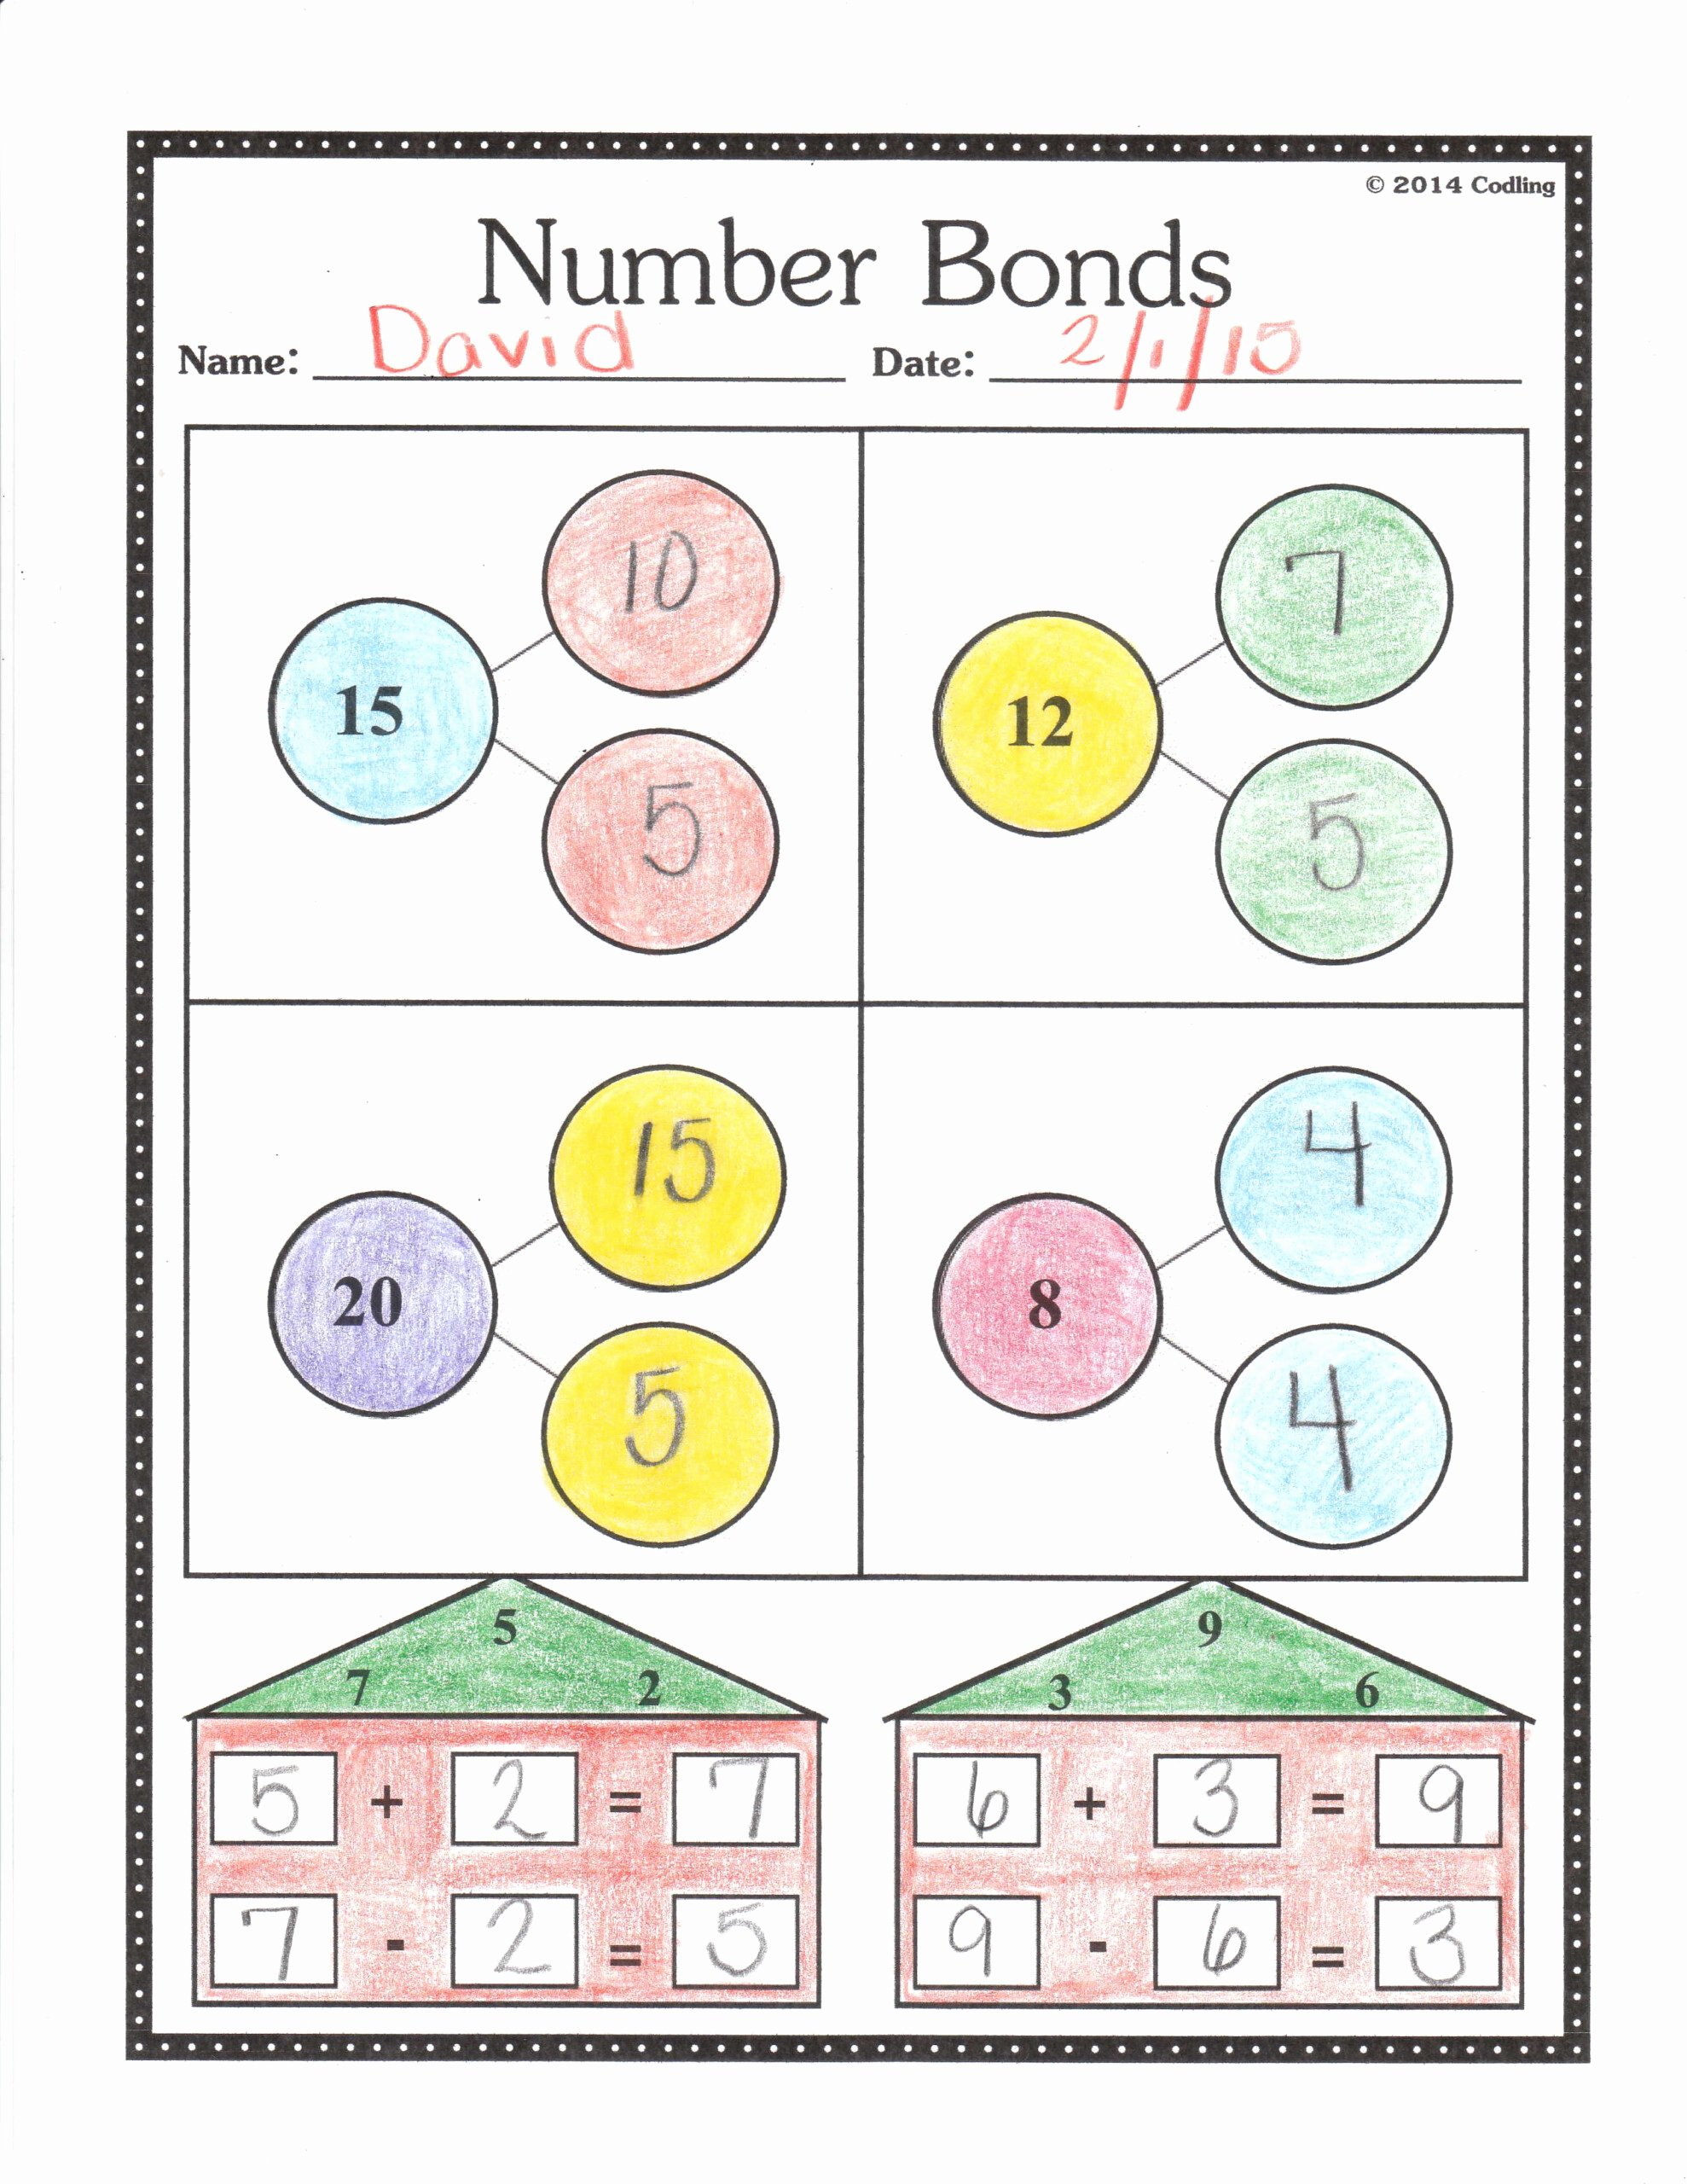 Decomposing Fractions 4th Grade Worksheet Lovely De Posing Fractions Worksheets Printables